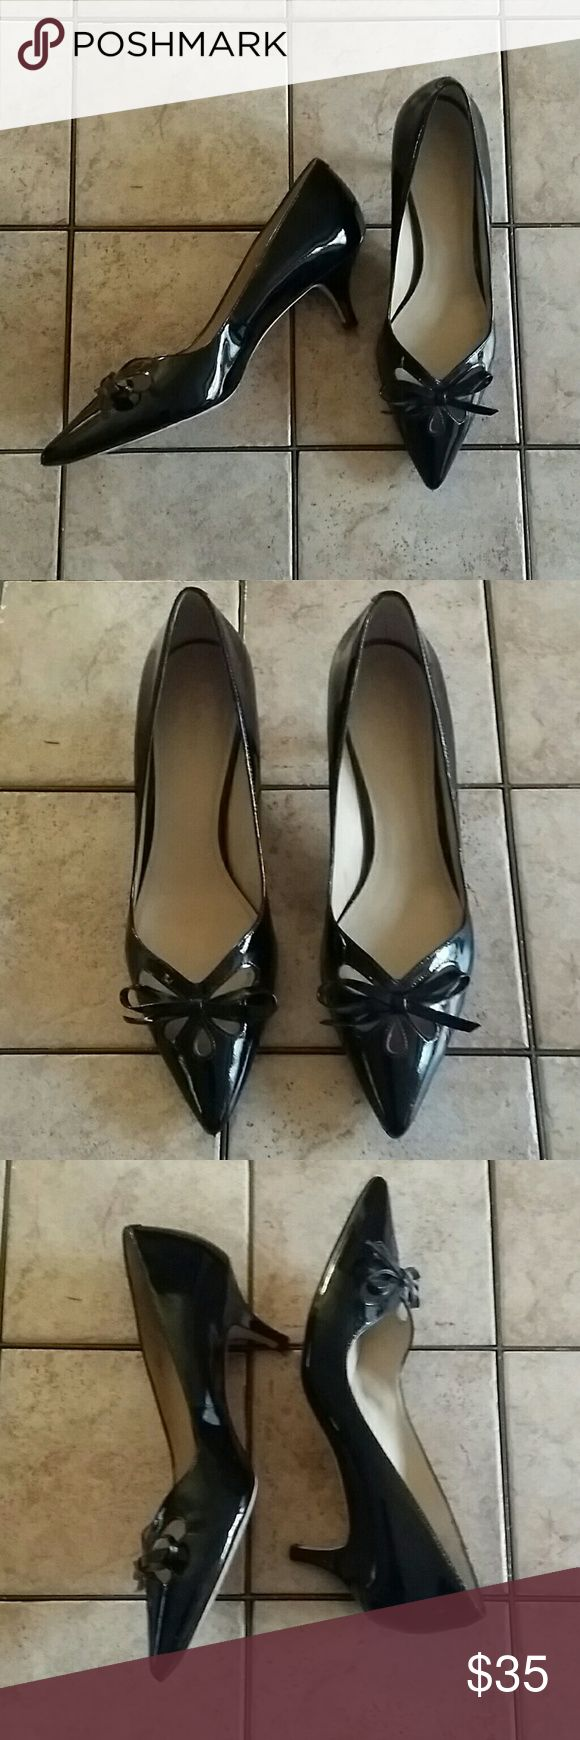 "Joan & David Blk Patent Leather Pumps, Sz 9.5M A beautiful pair of Joan & David black patent leather pumps, Sz 9.5 Medium, open flower design w/bow, and a comfortable 2"" heel. These are in excellent used condition, with normal wear on the bottom, and no marks/scratches/scuffing. Joan & David Shoes Heels"